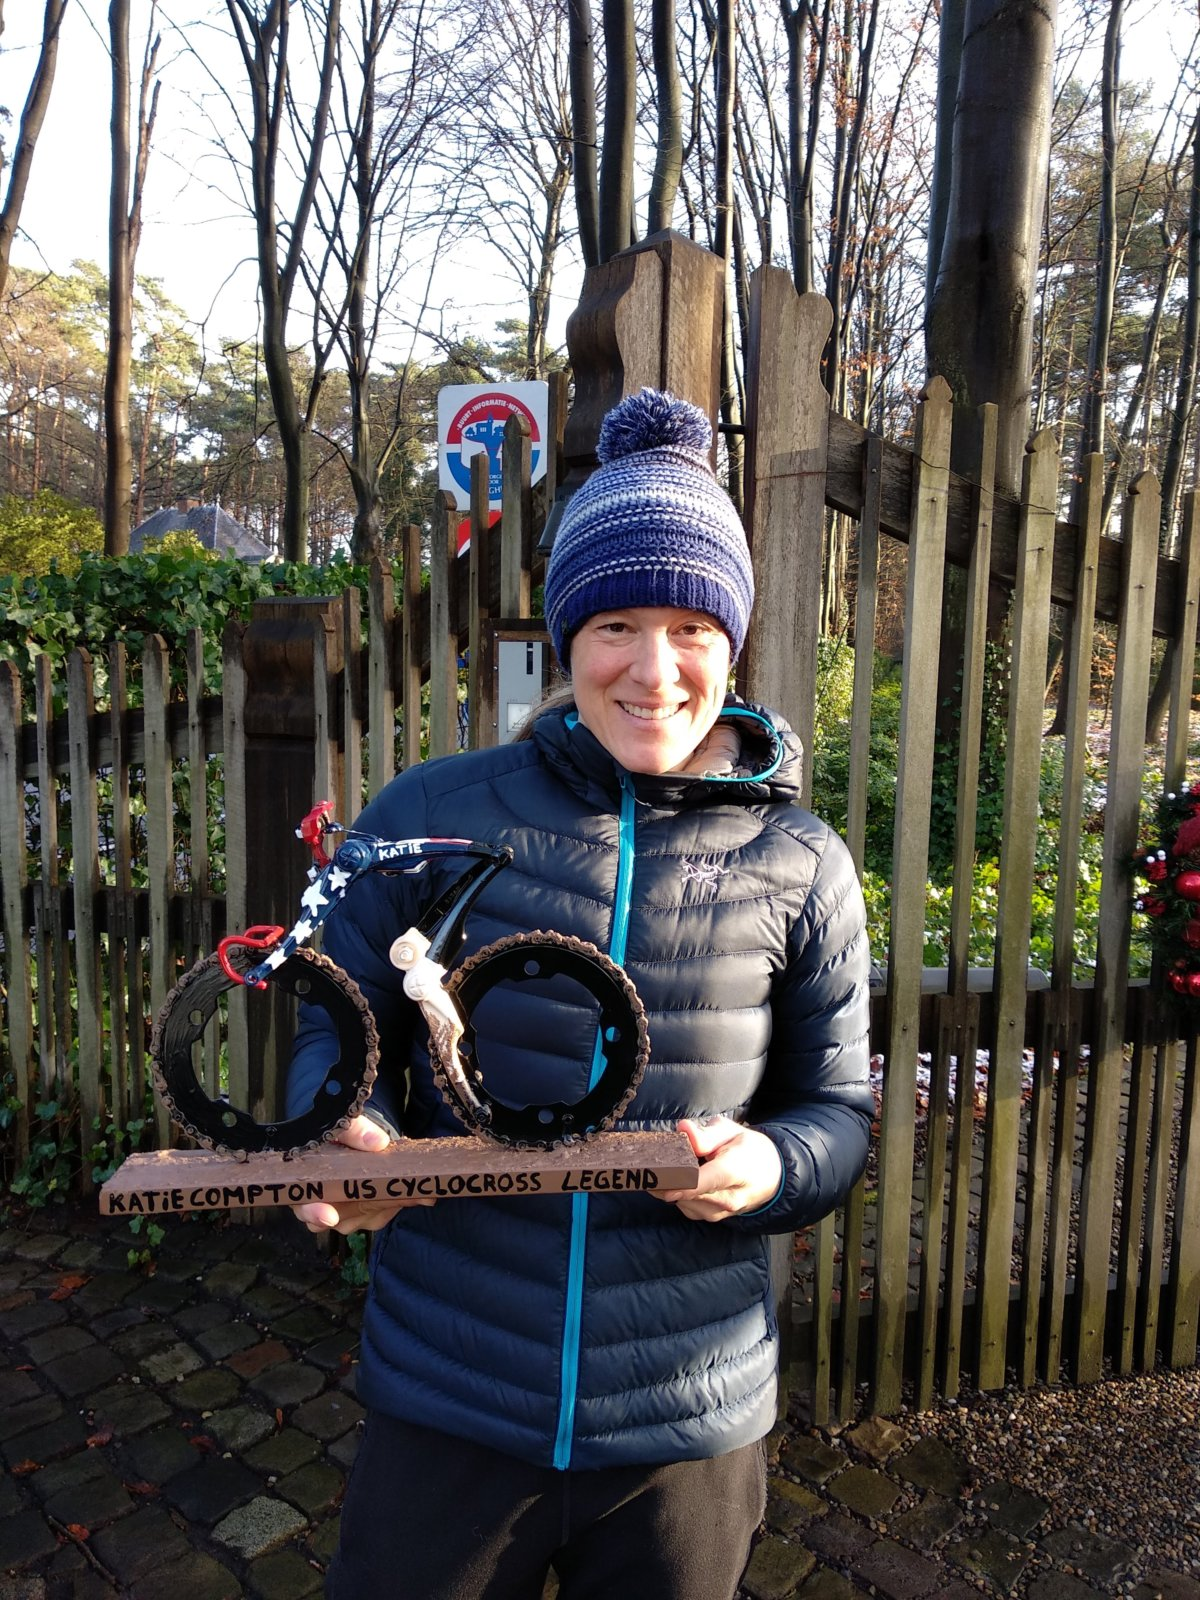 15 Times USA National Cyclo Cross Champion Katie Compton With Cyclist USA Cyclo Cross Created By Hubert Van Soest